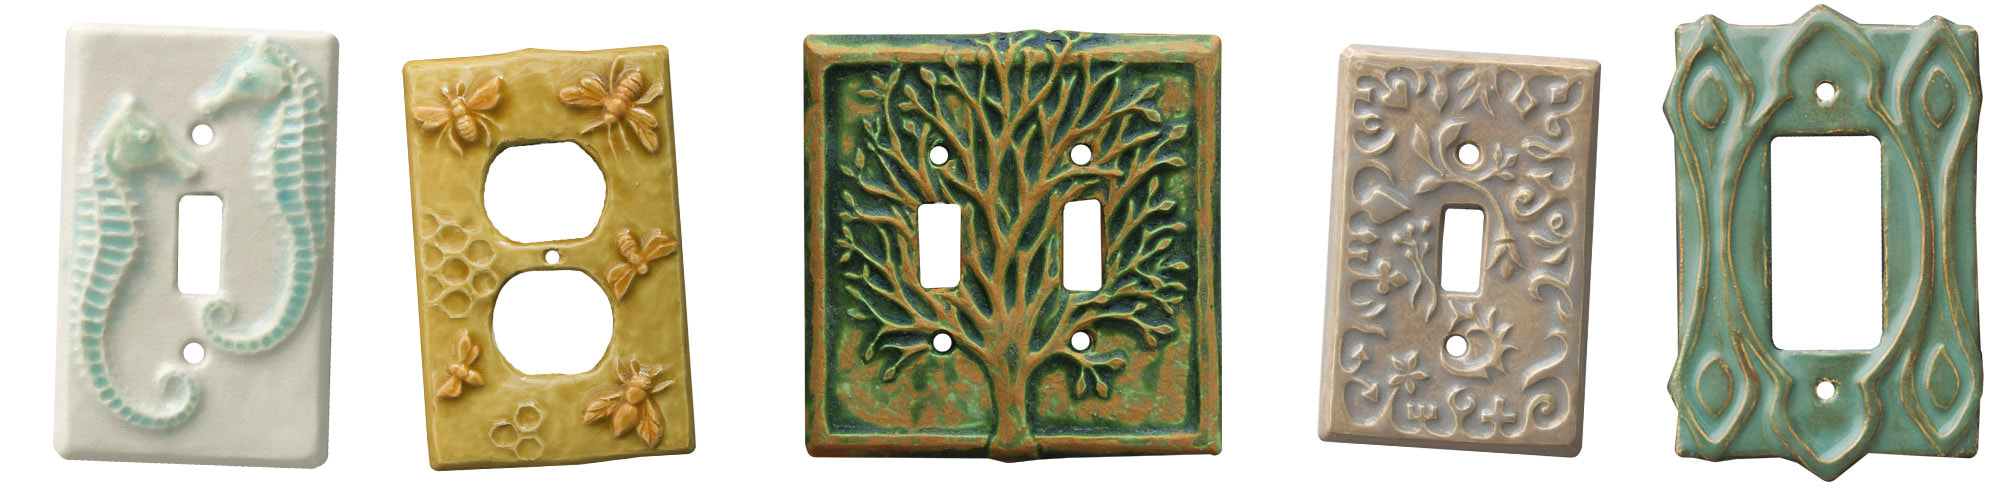 ceramic art light switch covers, unique light switch plates, moroccan switch plates, single toggle plates, GFI Outlet plates